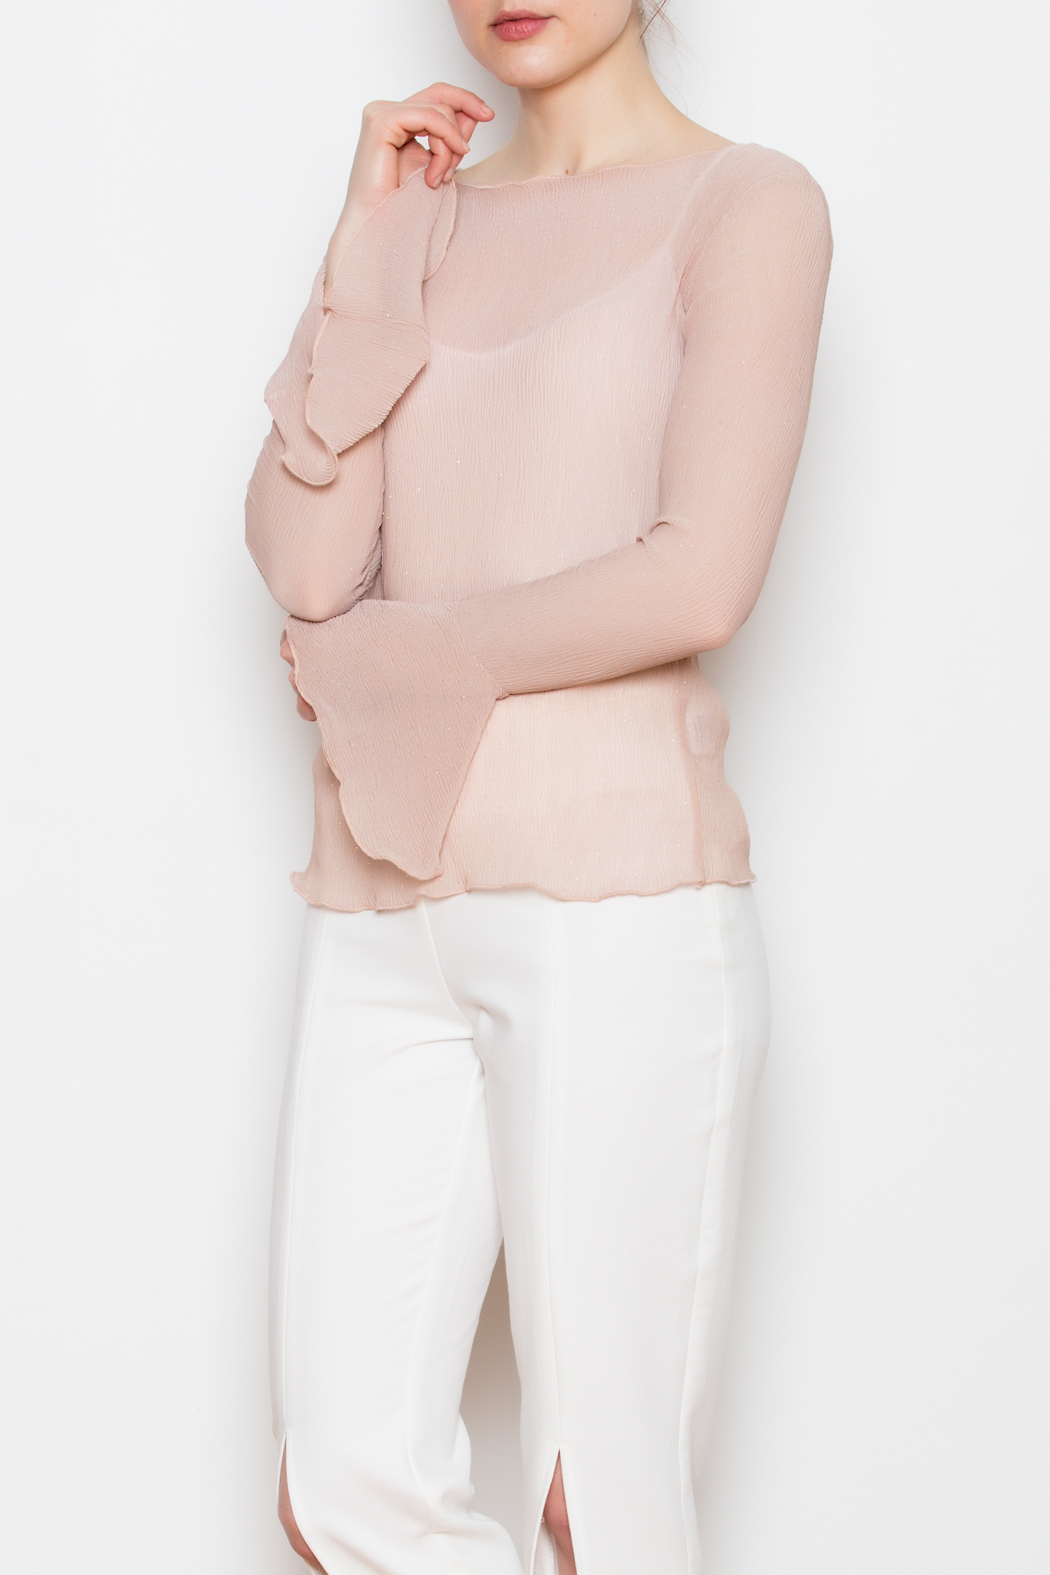 Lucy Paris Sheer Bell Sleeve Top - Front Cropped Image